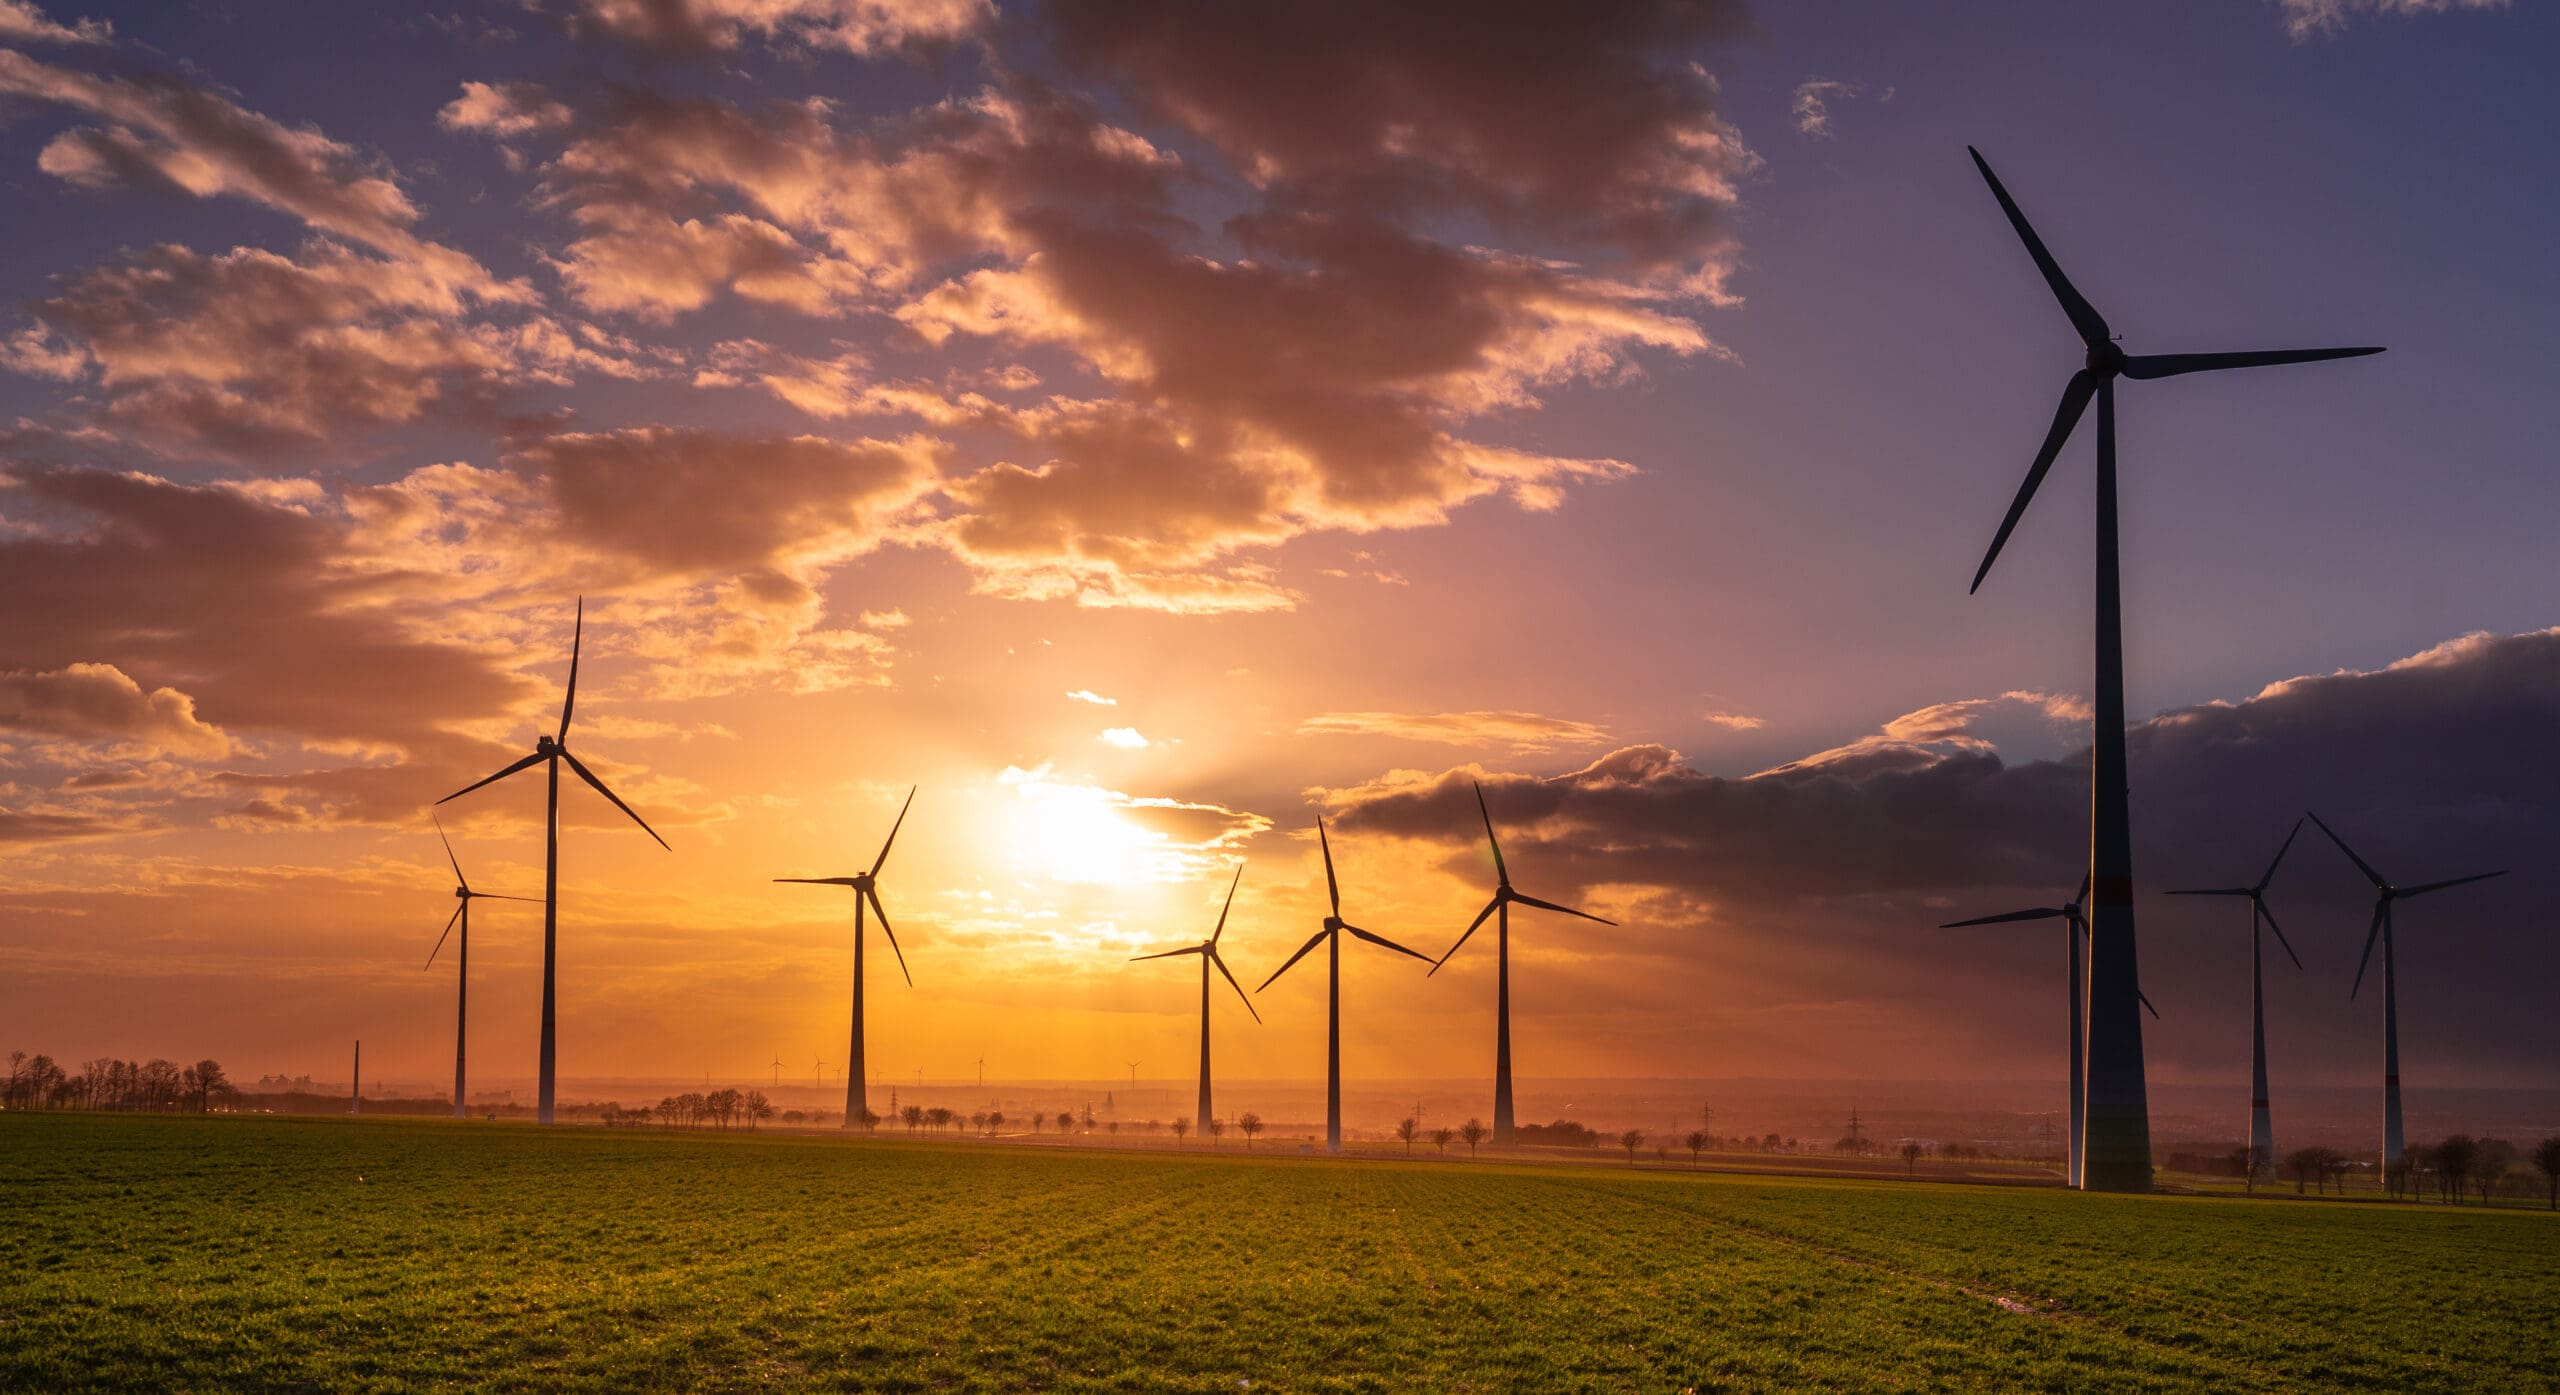 Sunset,With,Wind,Turbines